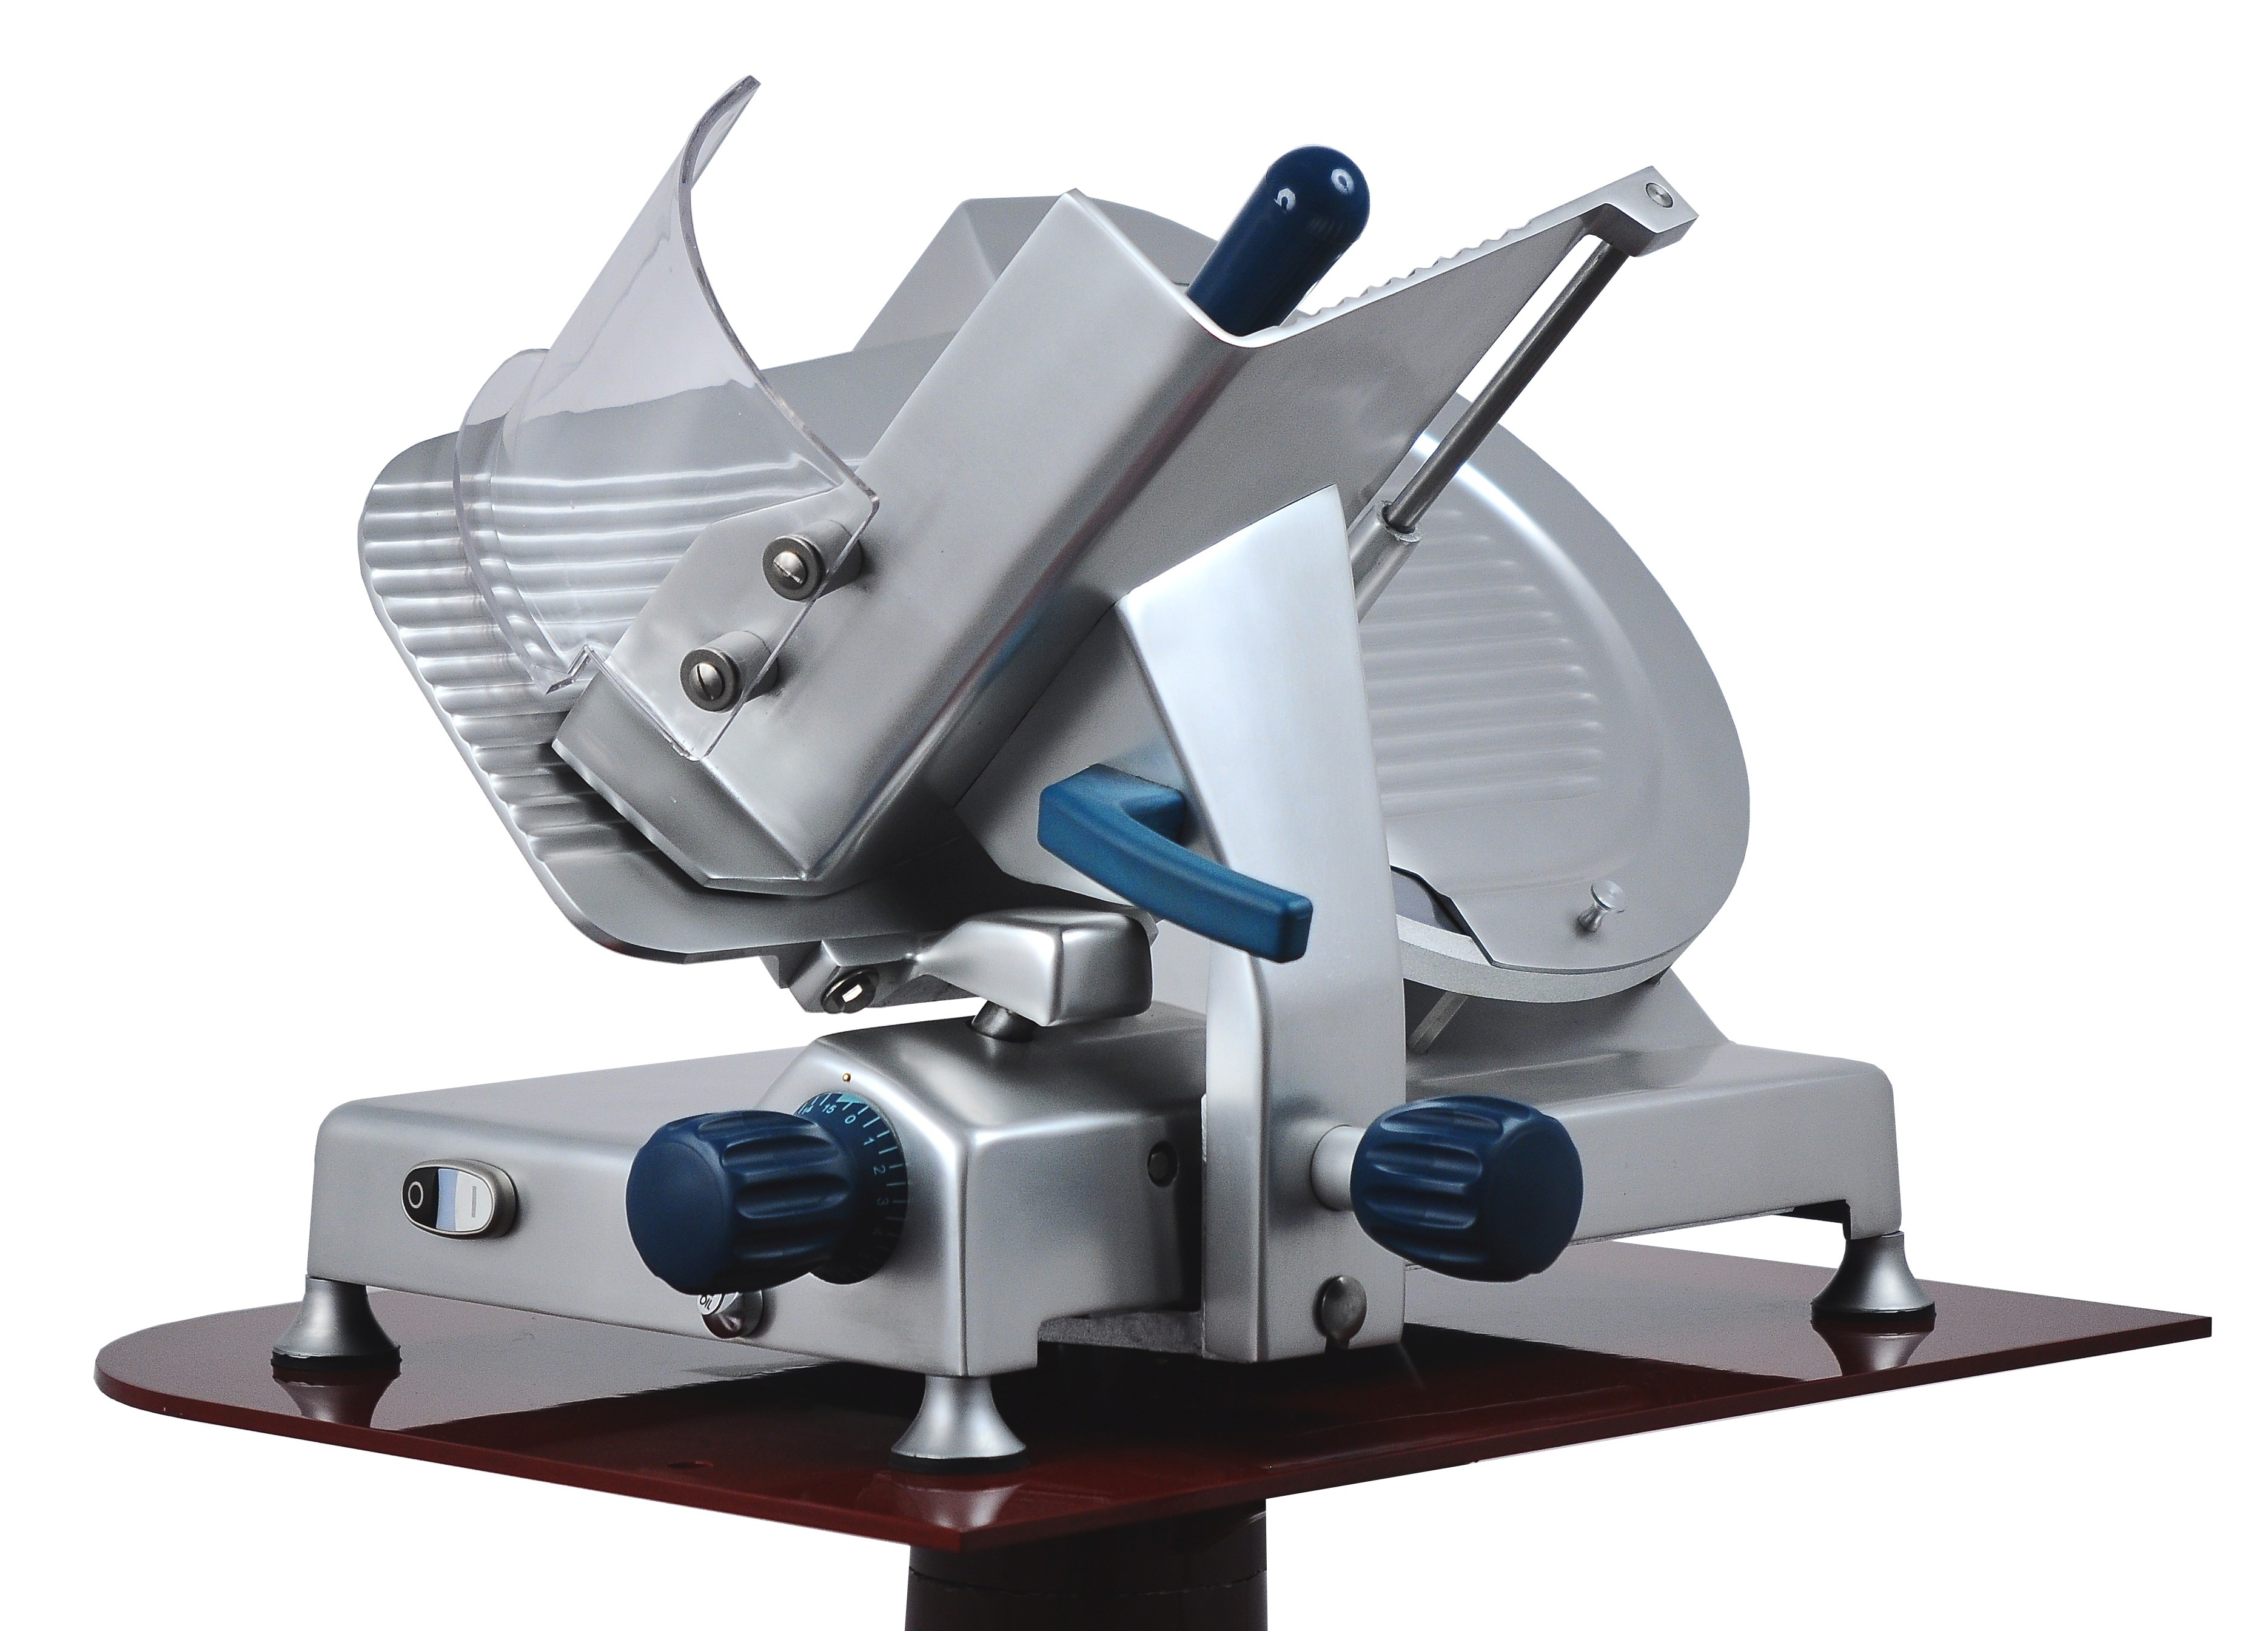 Noaw 350G Meat Slicer Spares